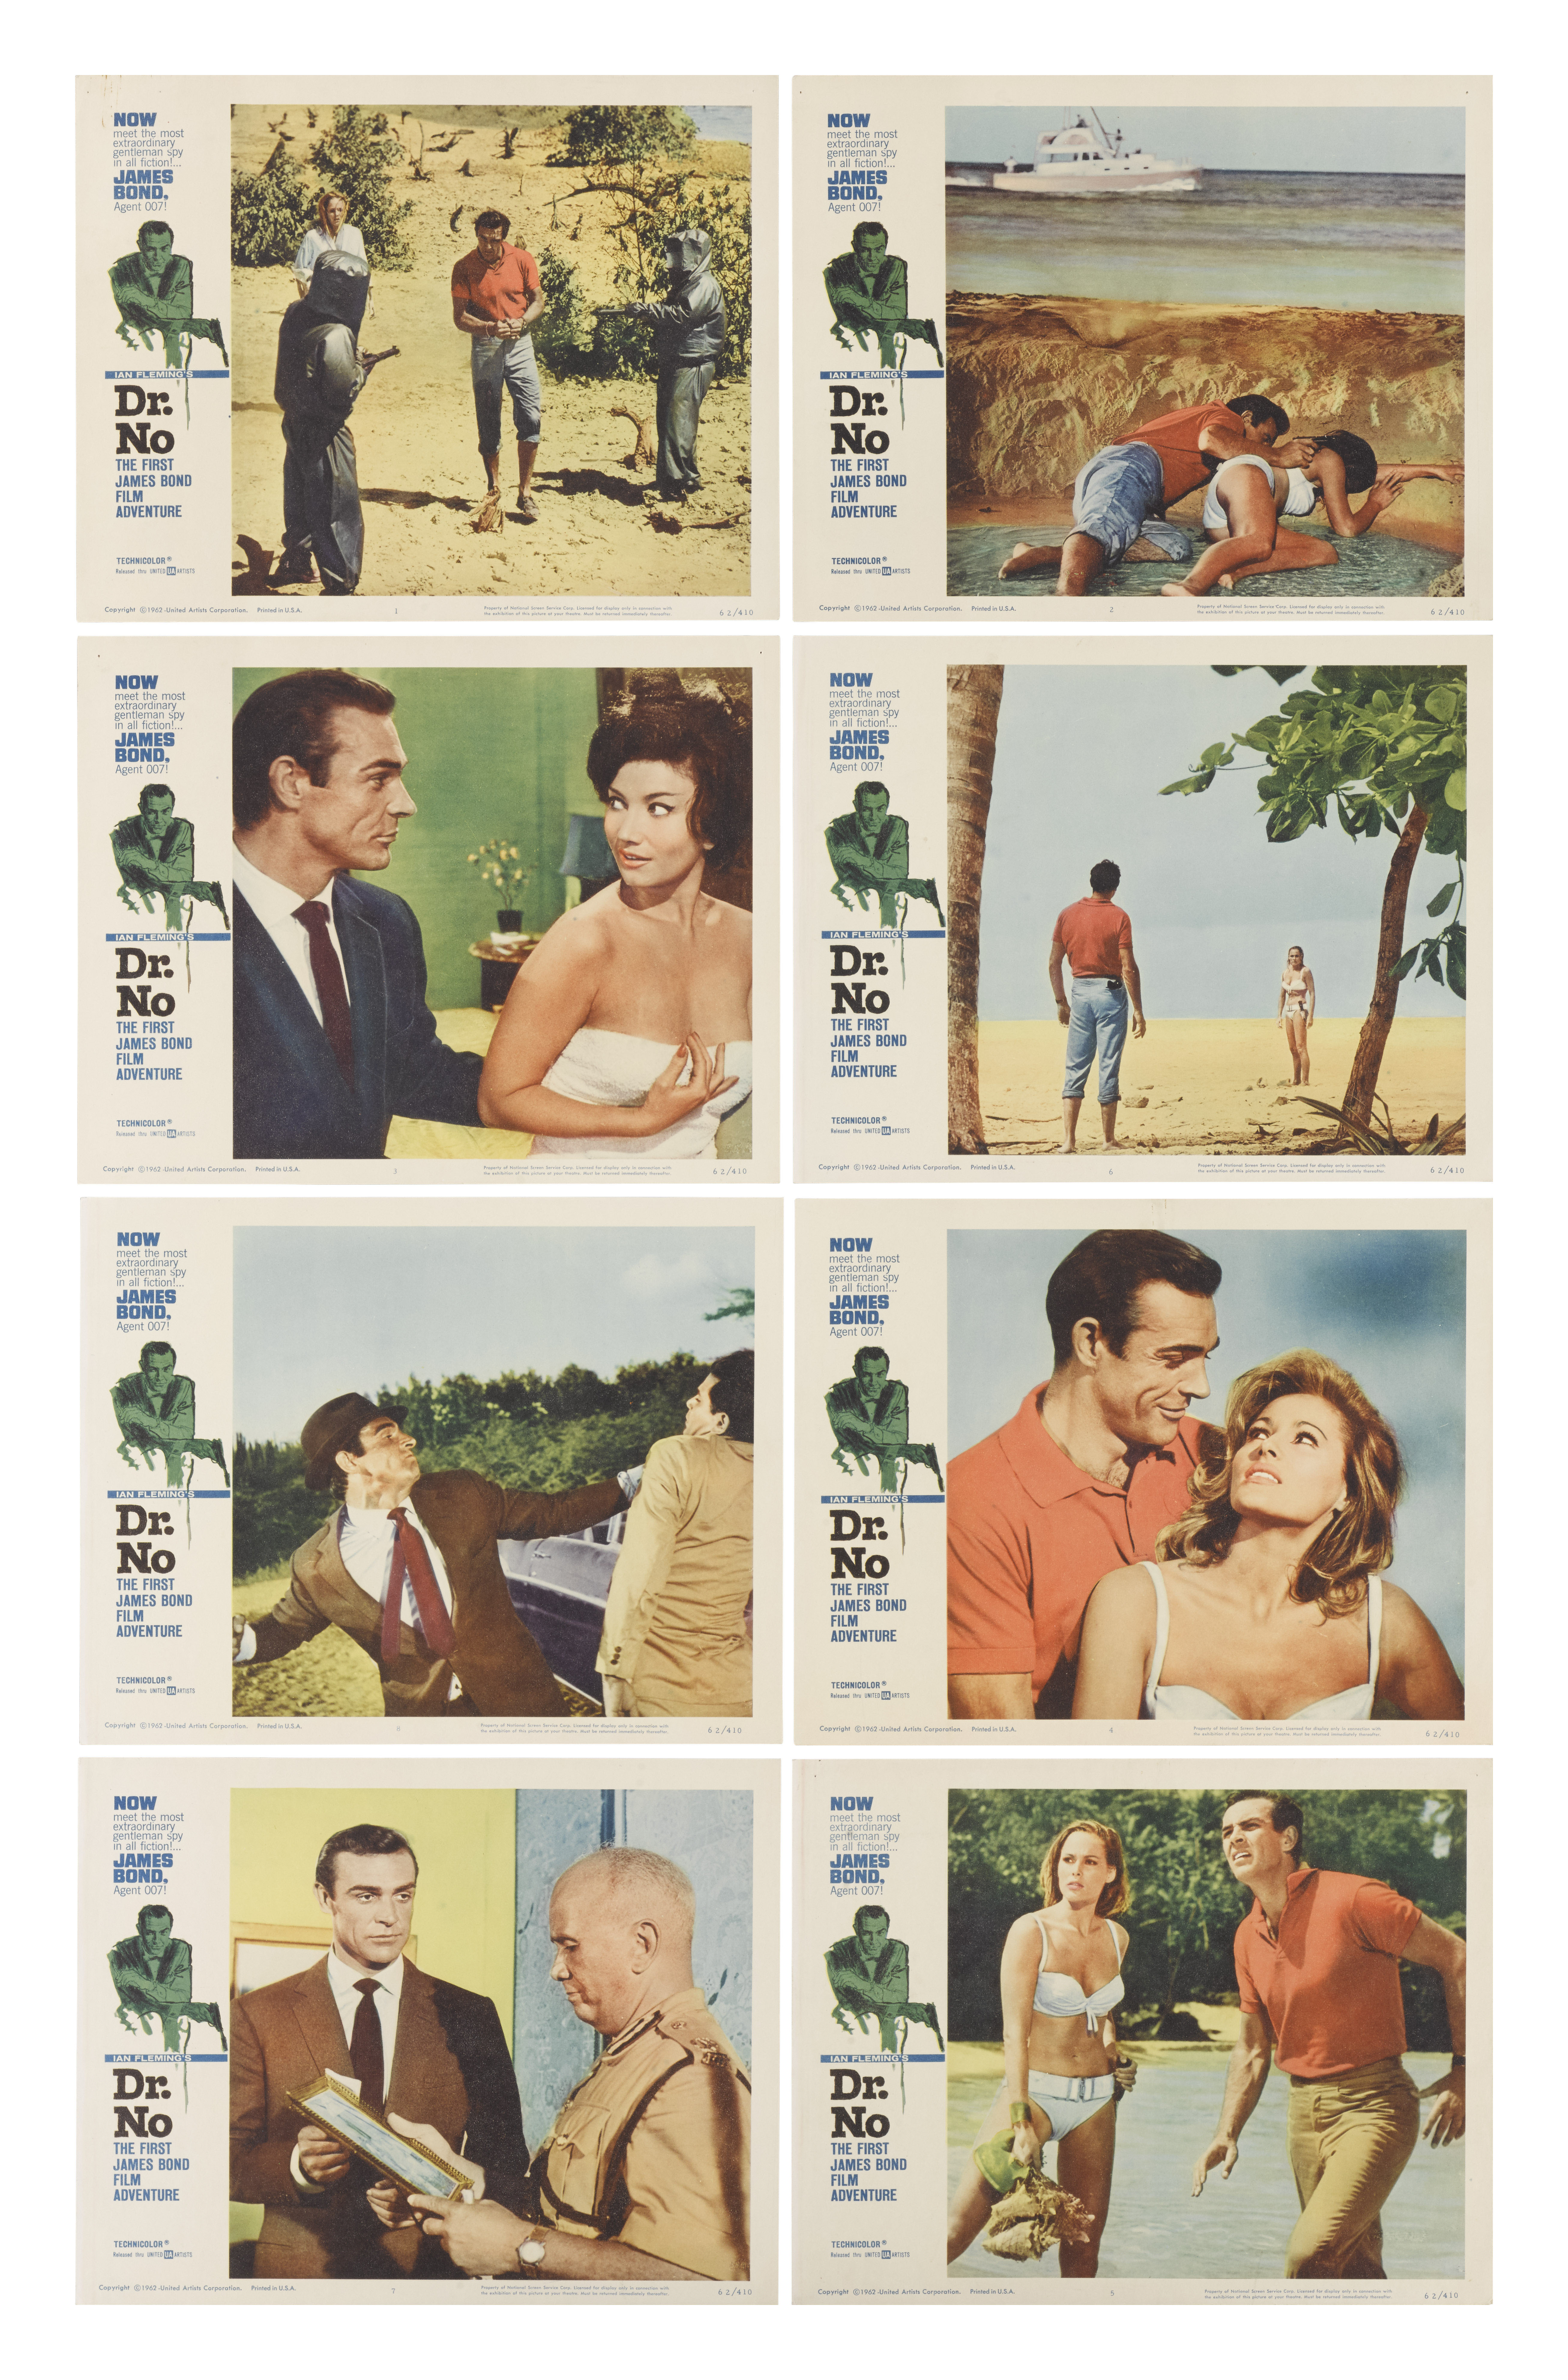 DR. NO (1962) SET OF 8 LOBBY CARDS, US